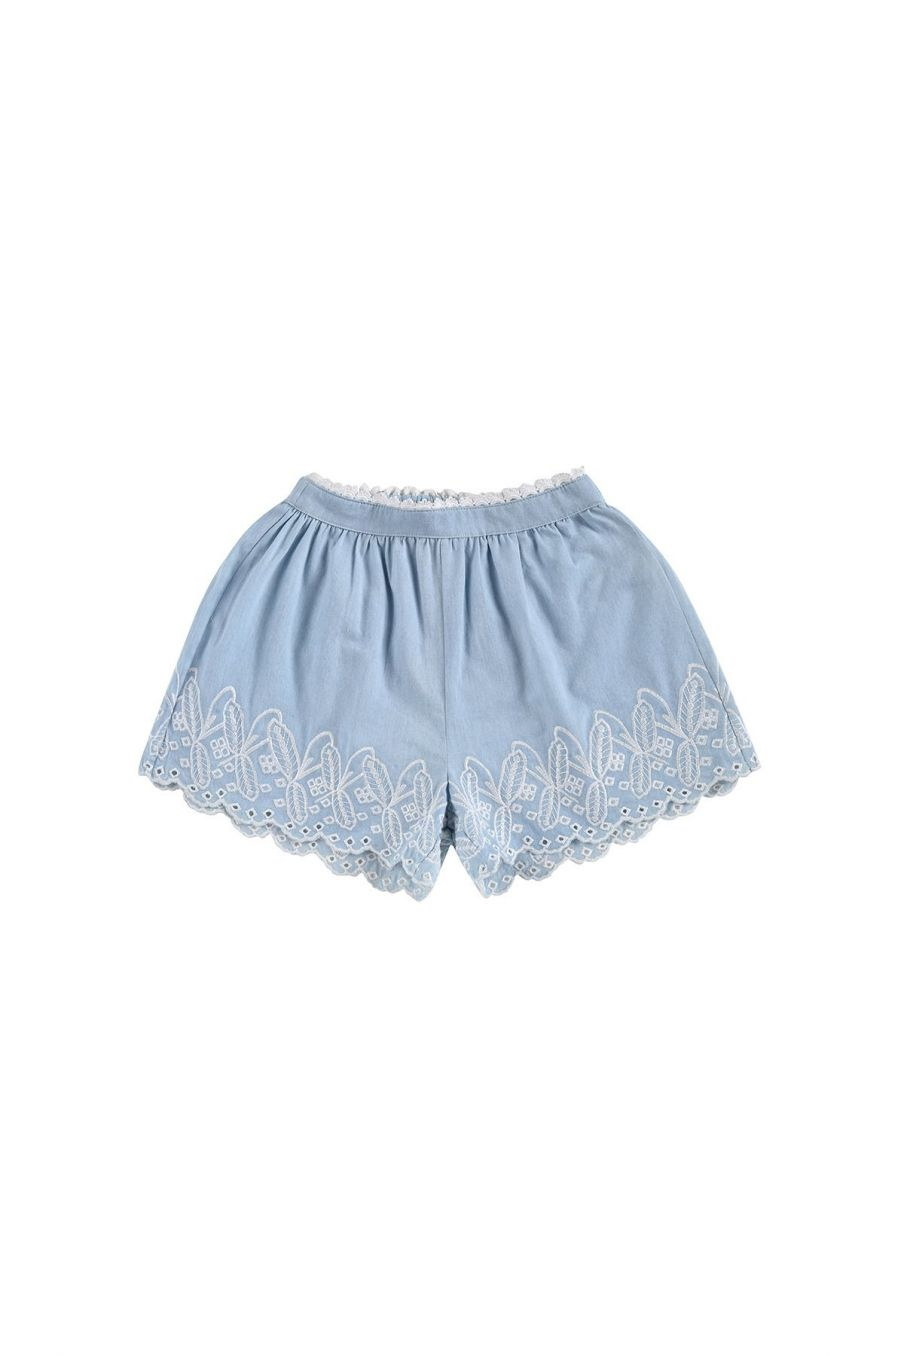 boheme chic vintage short fille luisa chambray